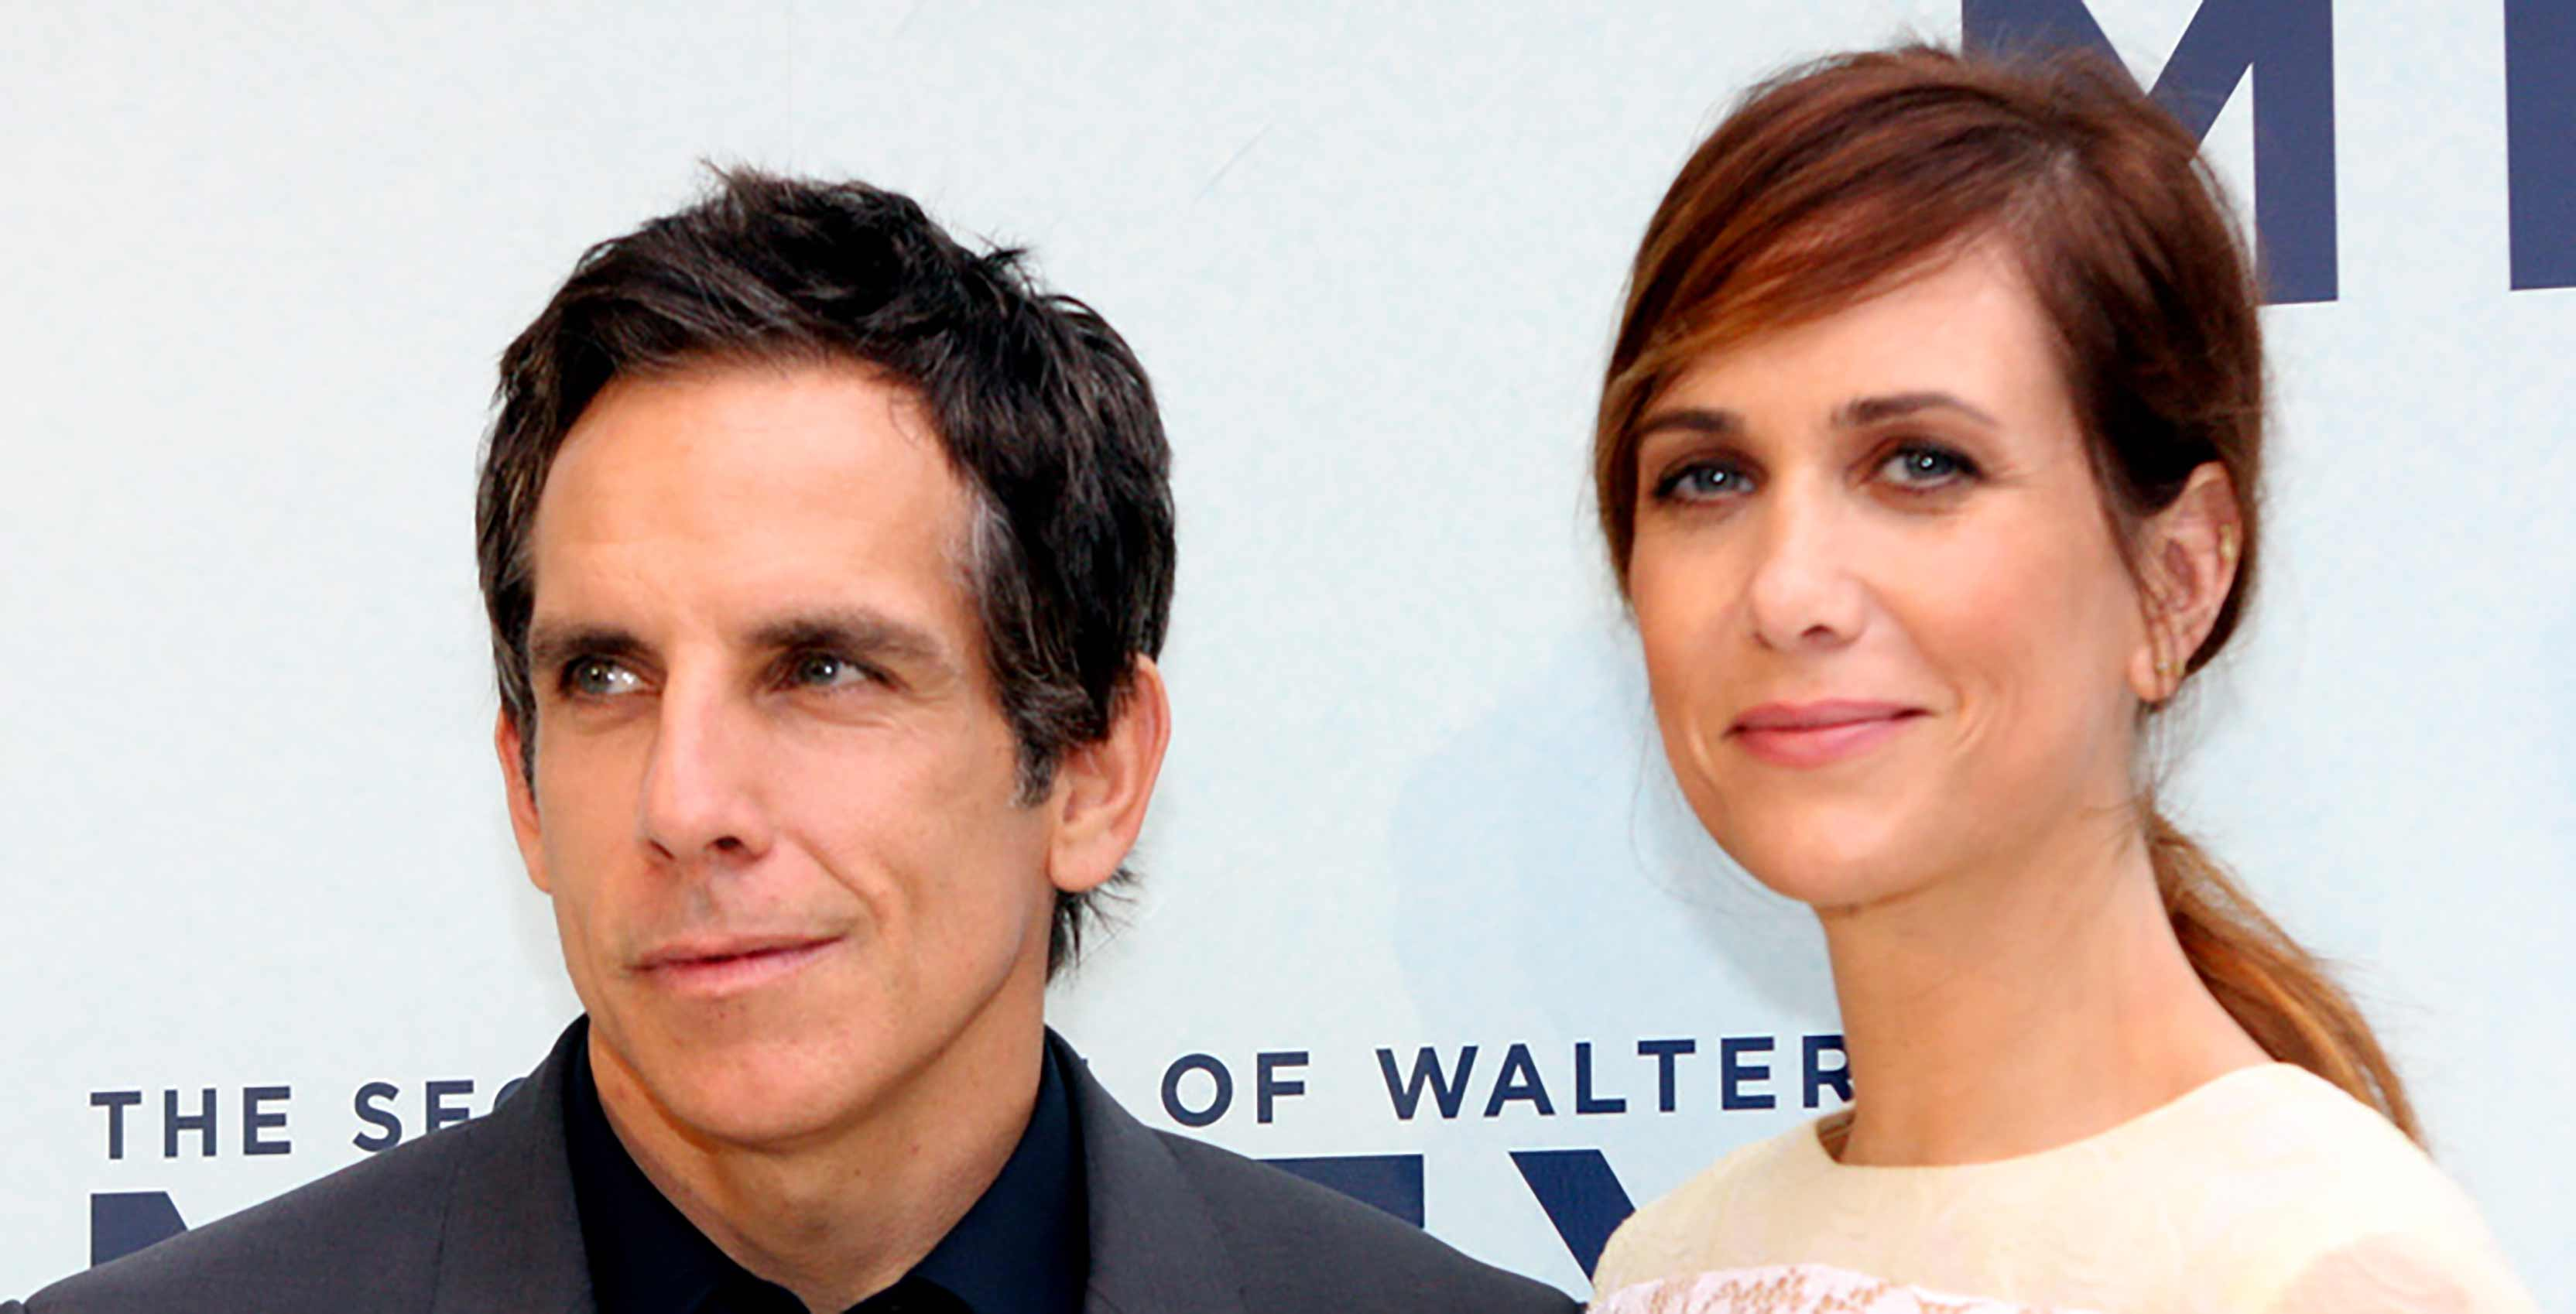 Ben Stiller and Kristen Wiig